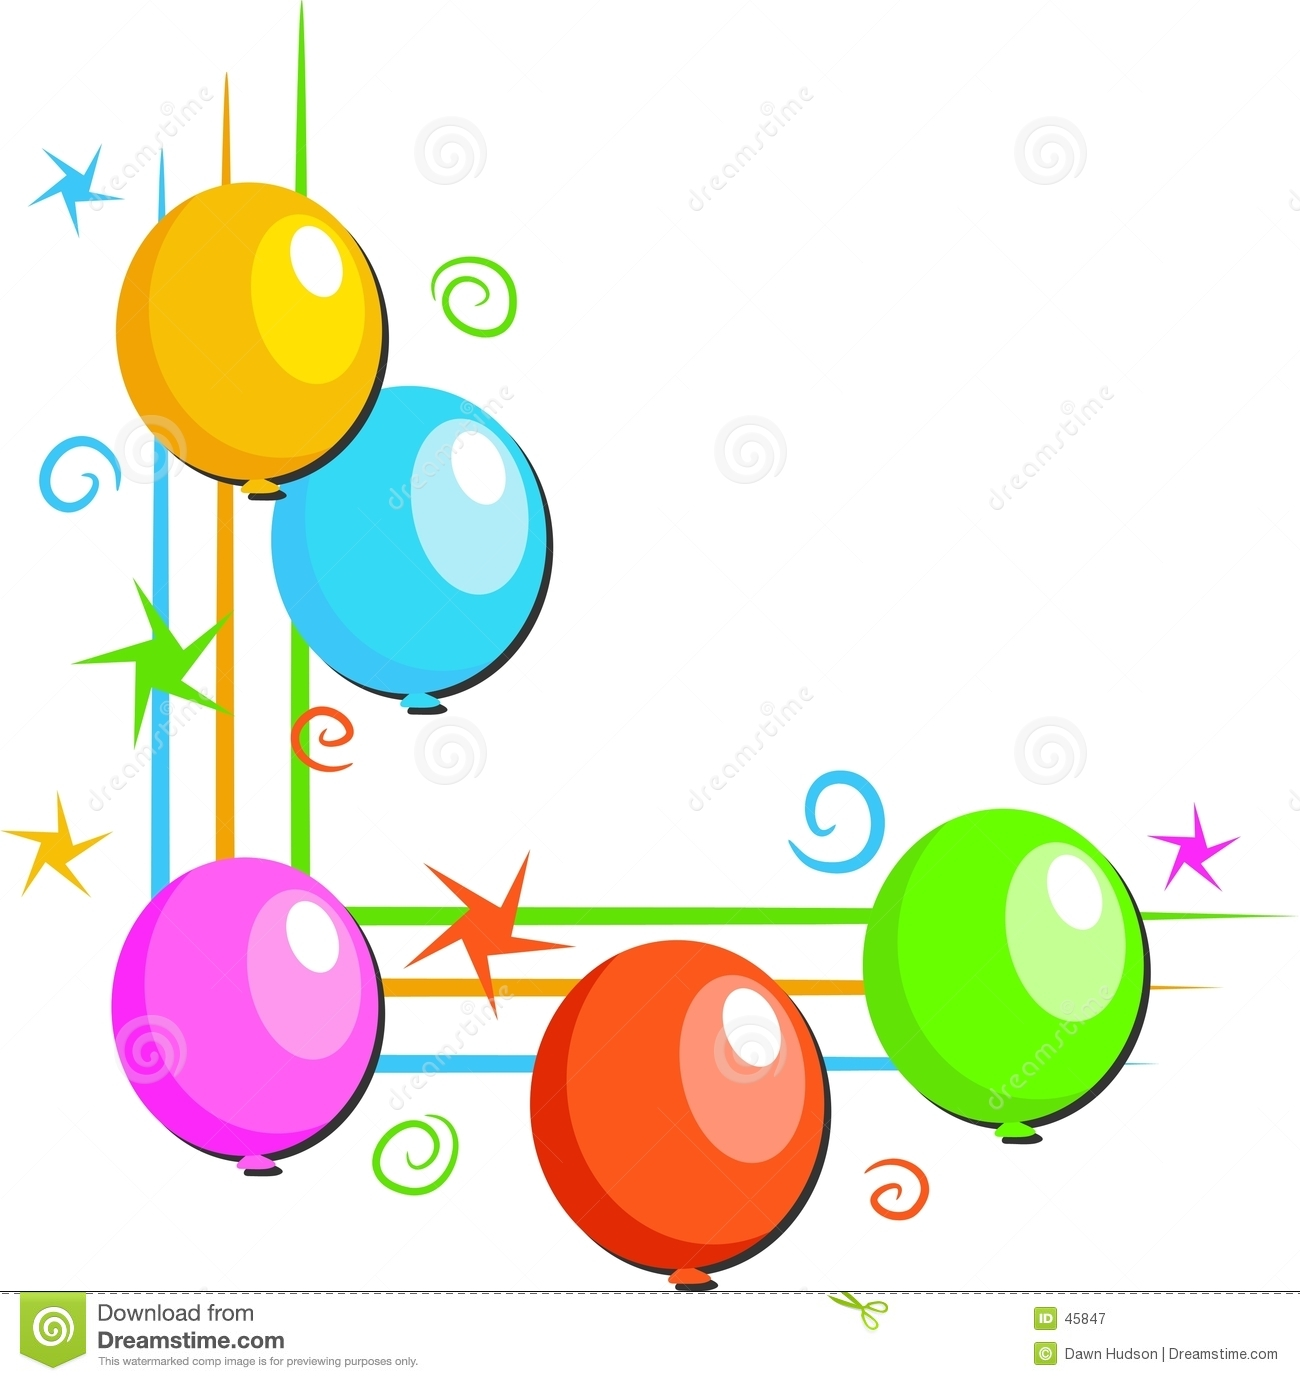 Balloons border clipart panda free clipart images clipart info thecheapjerseys Gallery